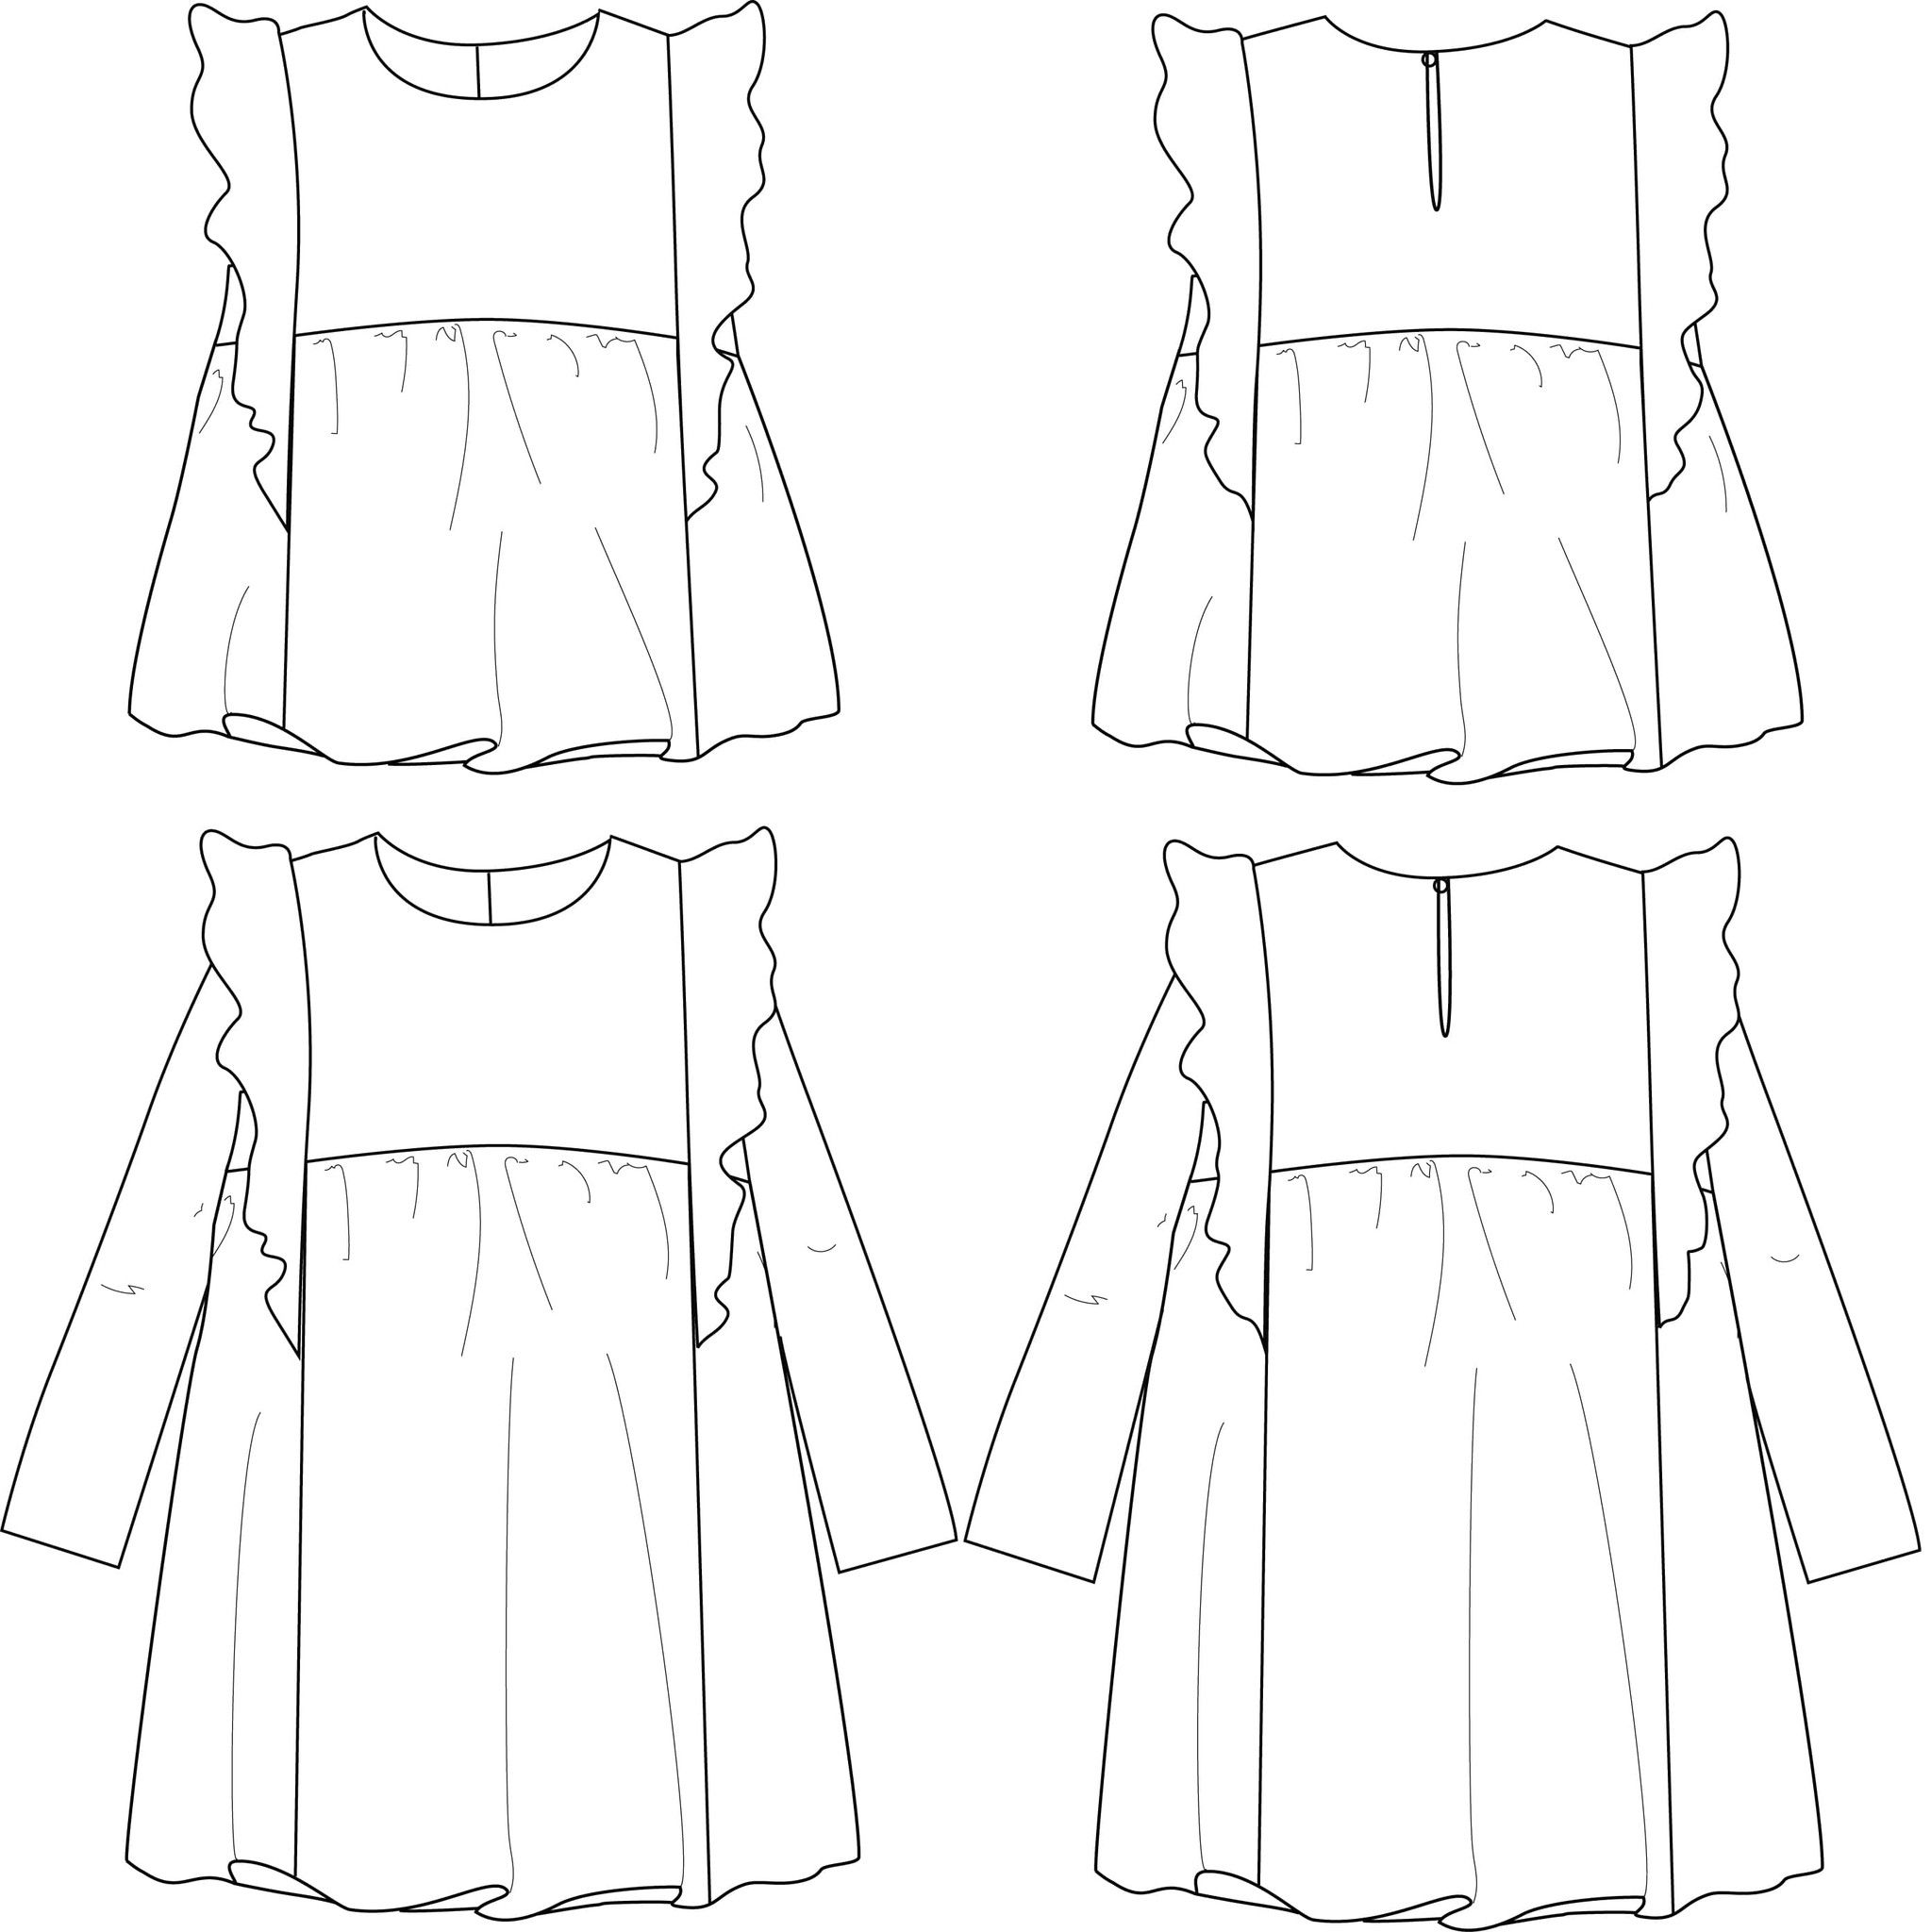 Stella DUO Blouse & Dress - Girl 3/12 - PDF Sewing Pattern | moda ...